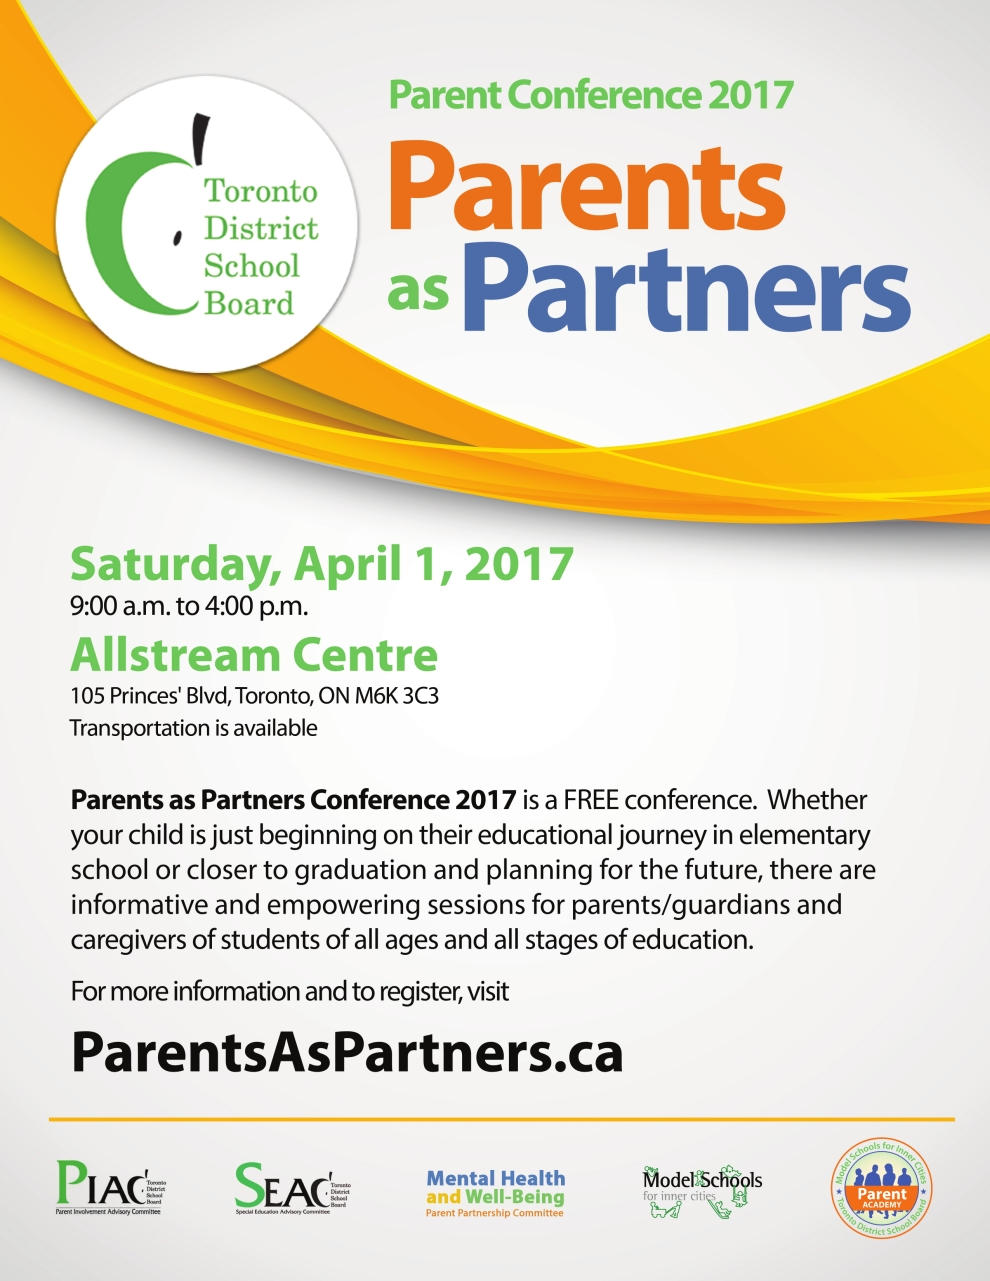 TDSB Parent Conference 2017 Parents as Partners. Saturday April 1, 2017 9:00 a.m. to 4:00 p.m. Allstream Centre 105 Princes' Blvd, Toronto, ON  M6K 3C3 Transportation is available. Parents as Partners Conference 2017 is a FREE conference. Whether your child is just beginning on their educational journey in elementary school or closer to graduation and planning for the future, there are informative and empowering sessions for parents/guardians and caregivers of students of all ages and all stages of education. For more information and to register, visit ParentsAsPartners.ca